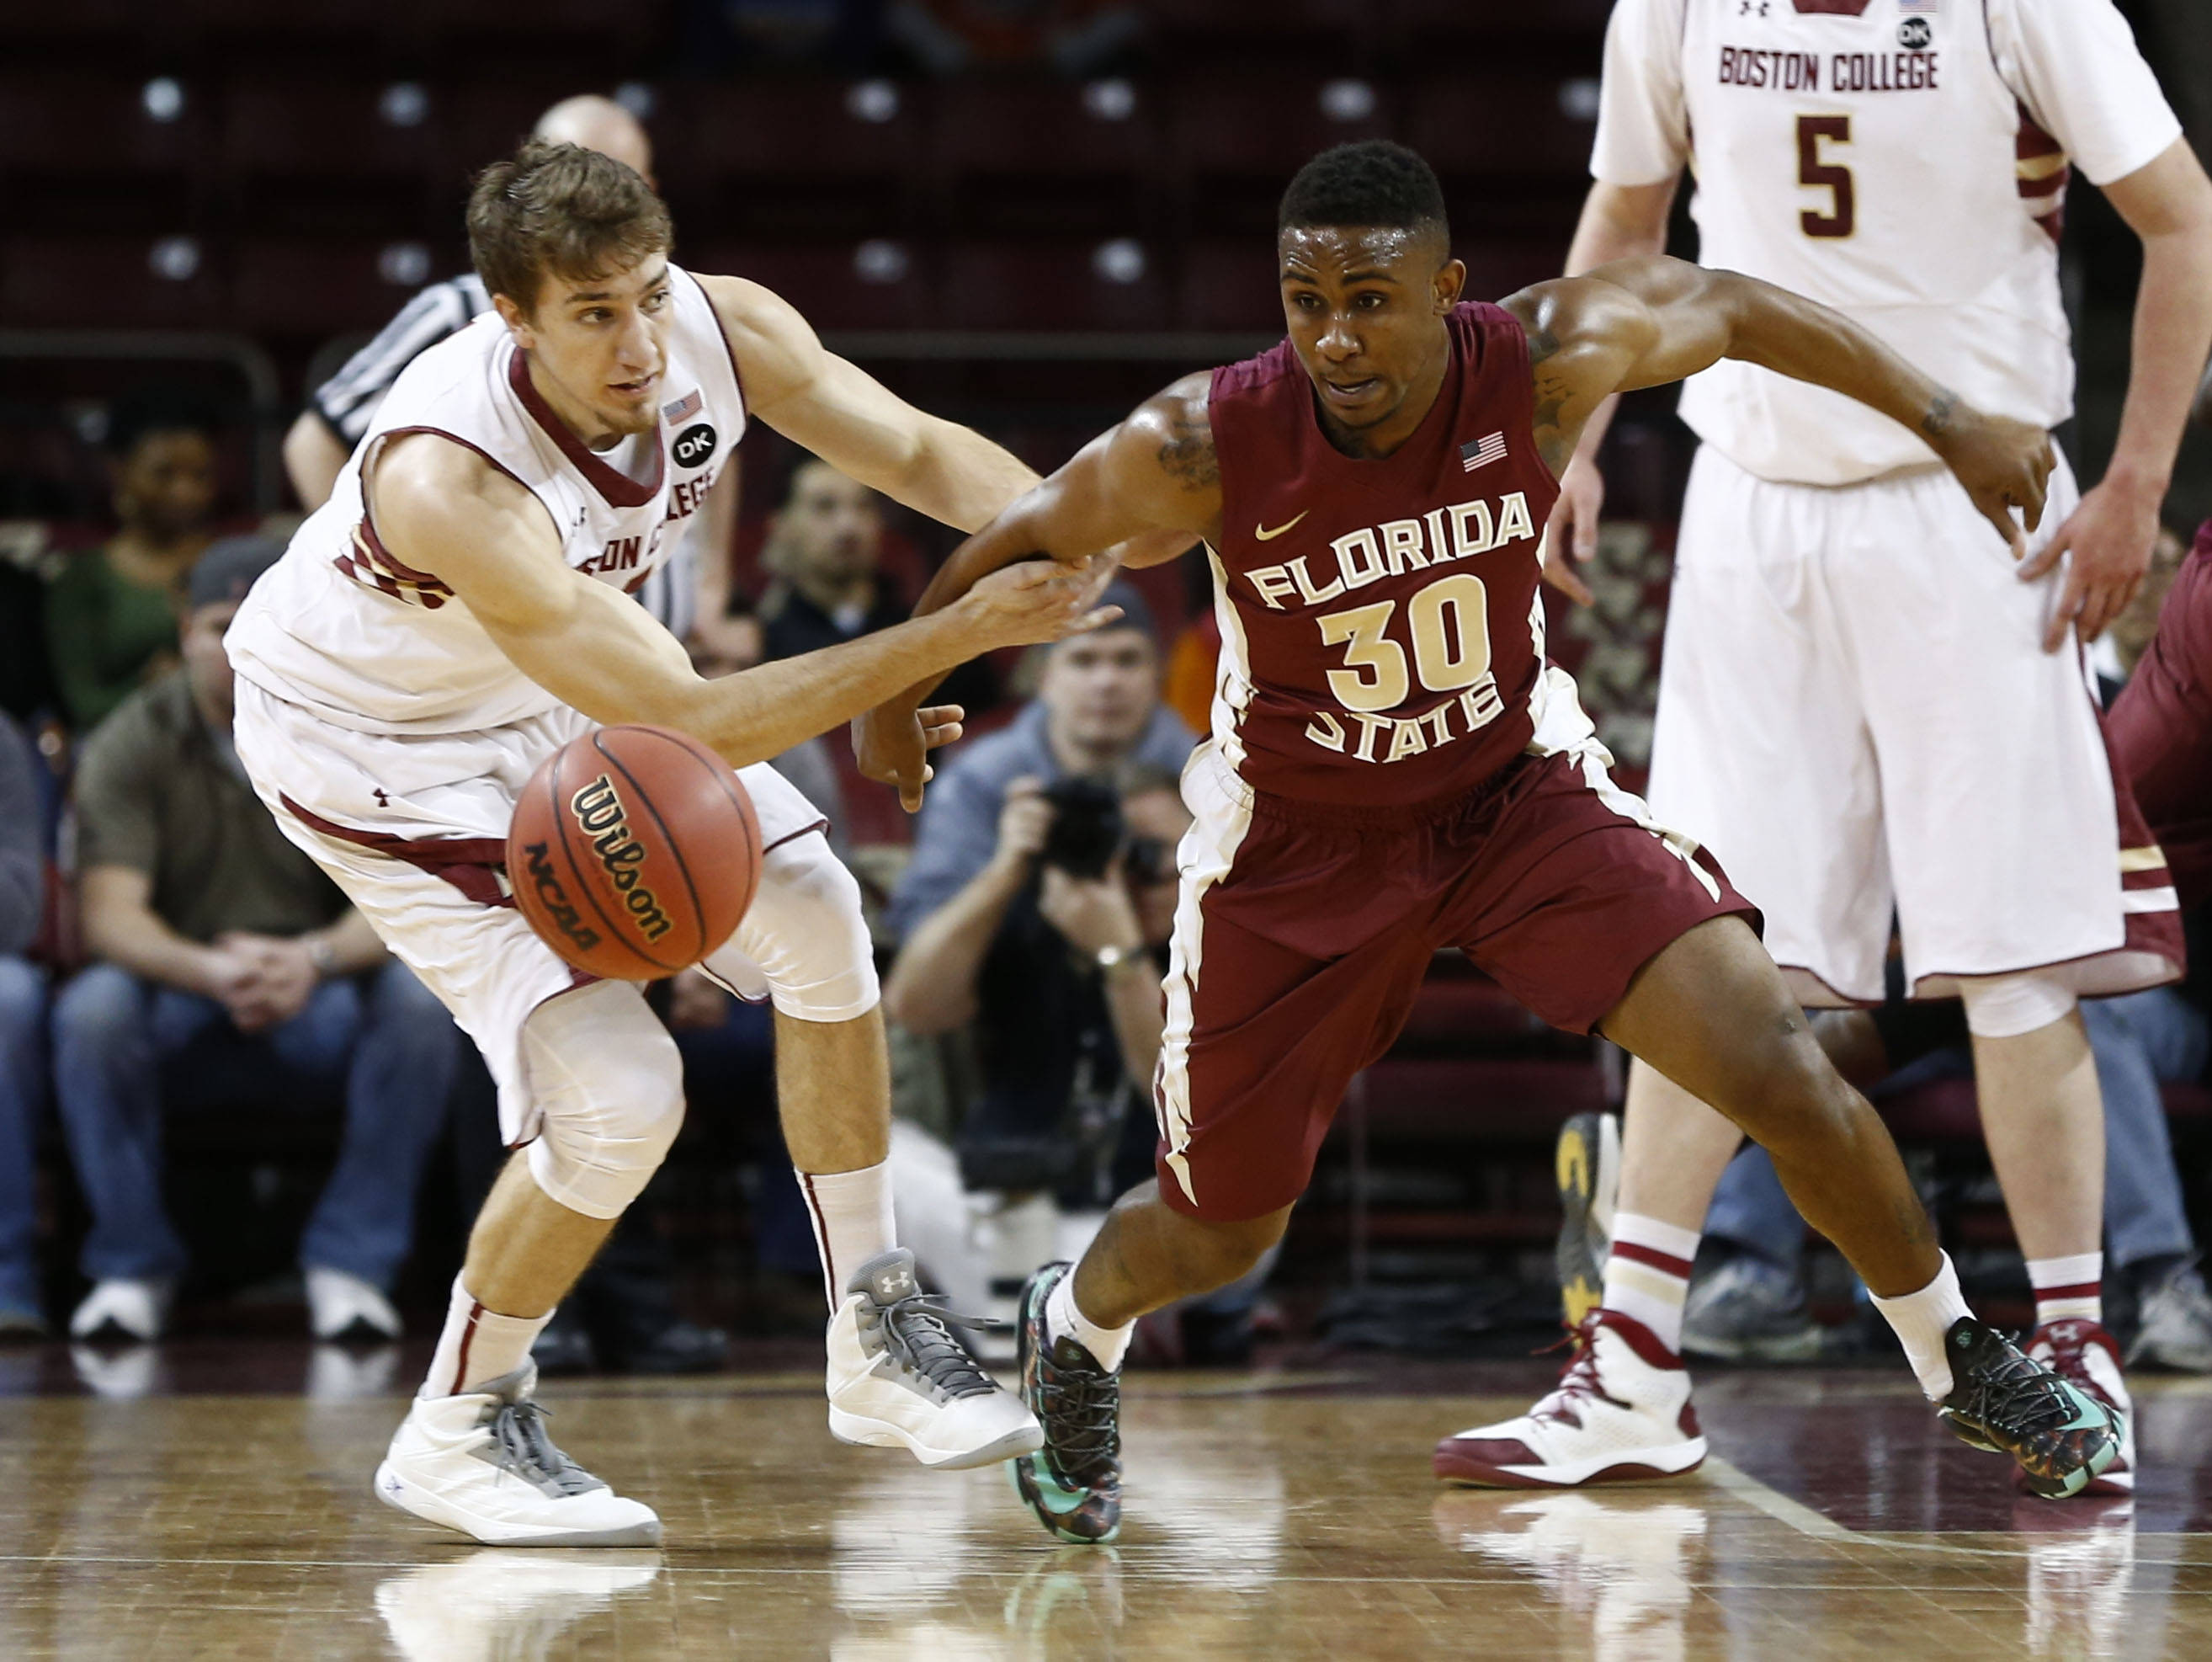 Mar 4, 2014; Chestnut Hill, MA, USA; Boston College Eagles forward Eddie Odio (left) and Seminoles guard Ian Miller (30) battle for a loose ball during the first half. Mark L. Baer-USA TODAY Sports